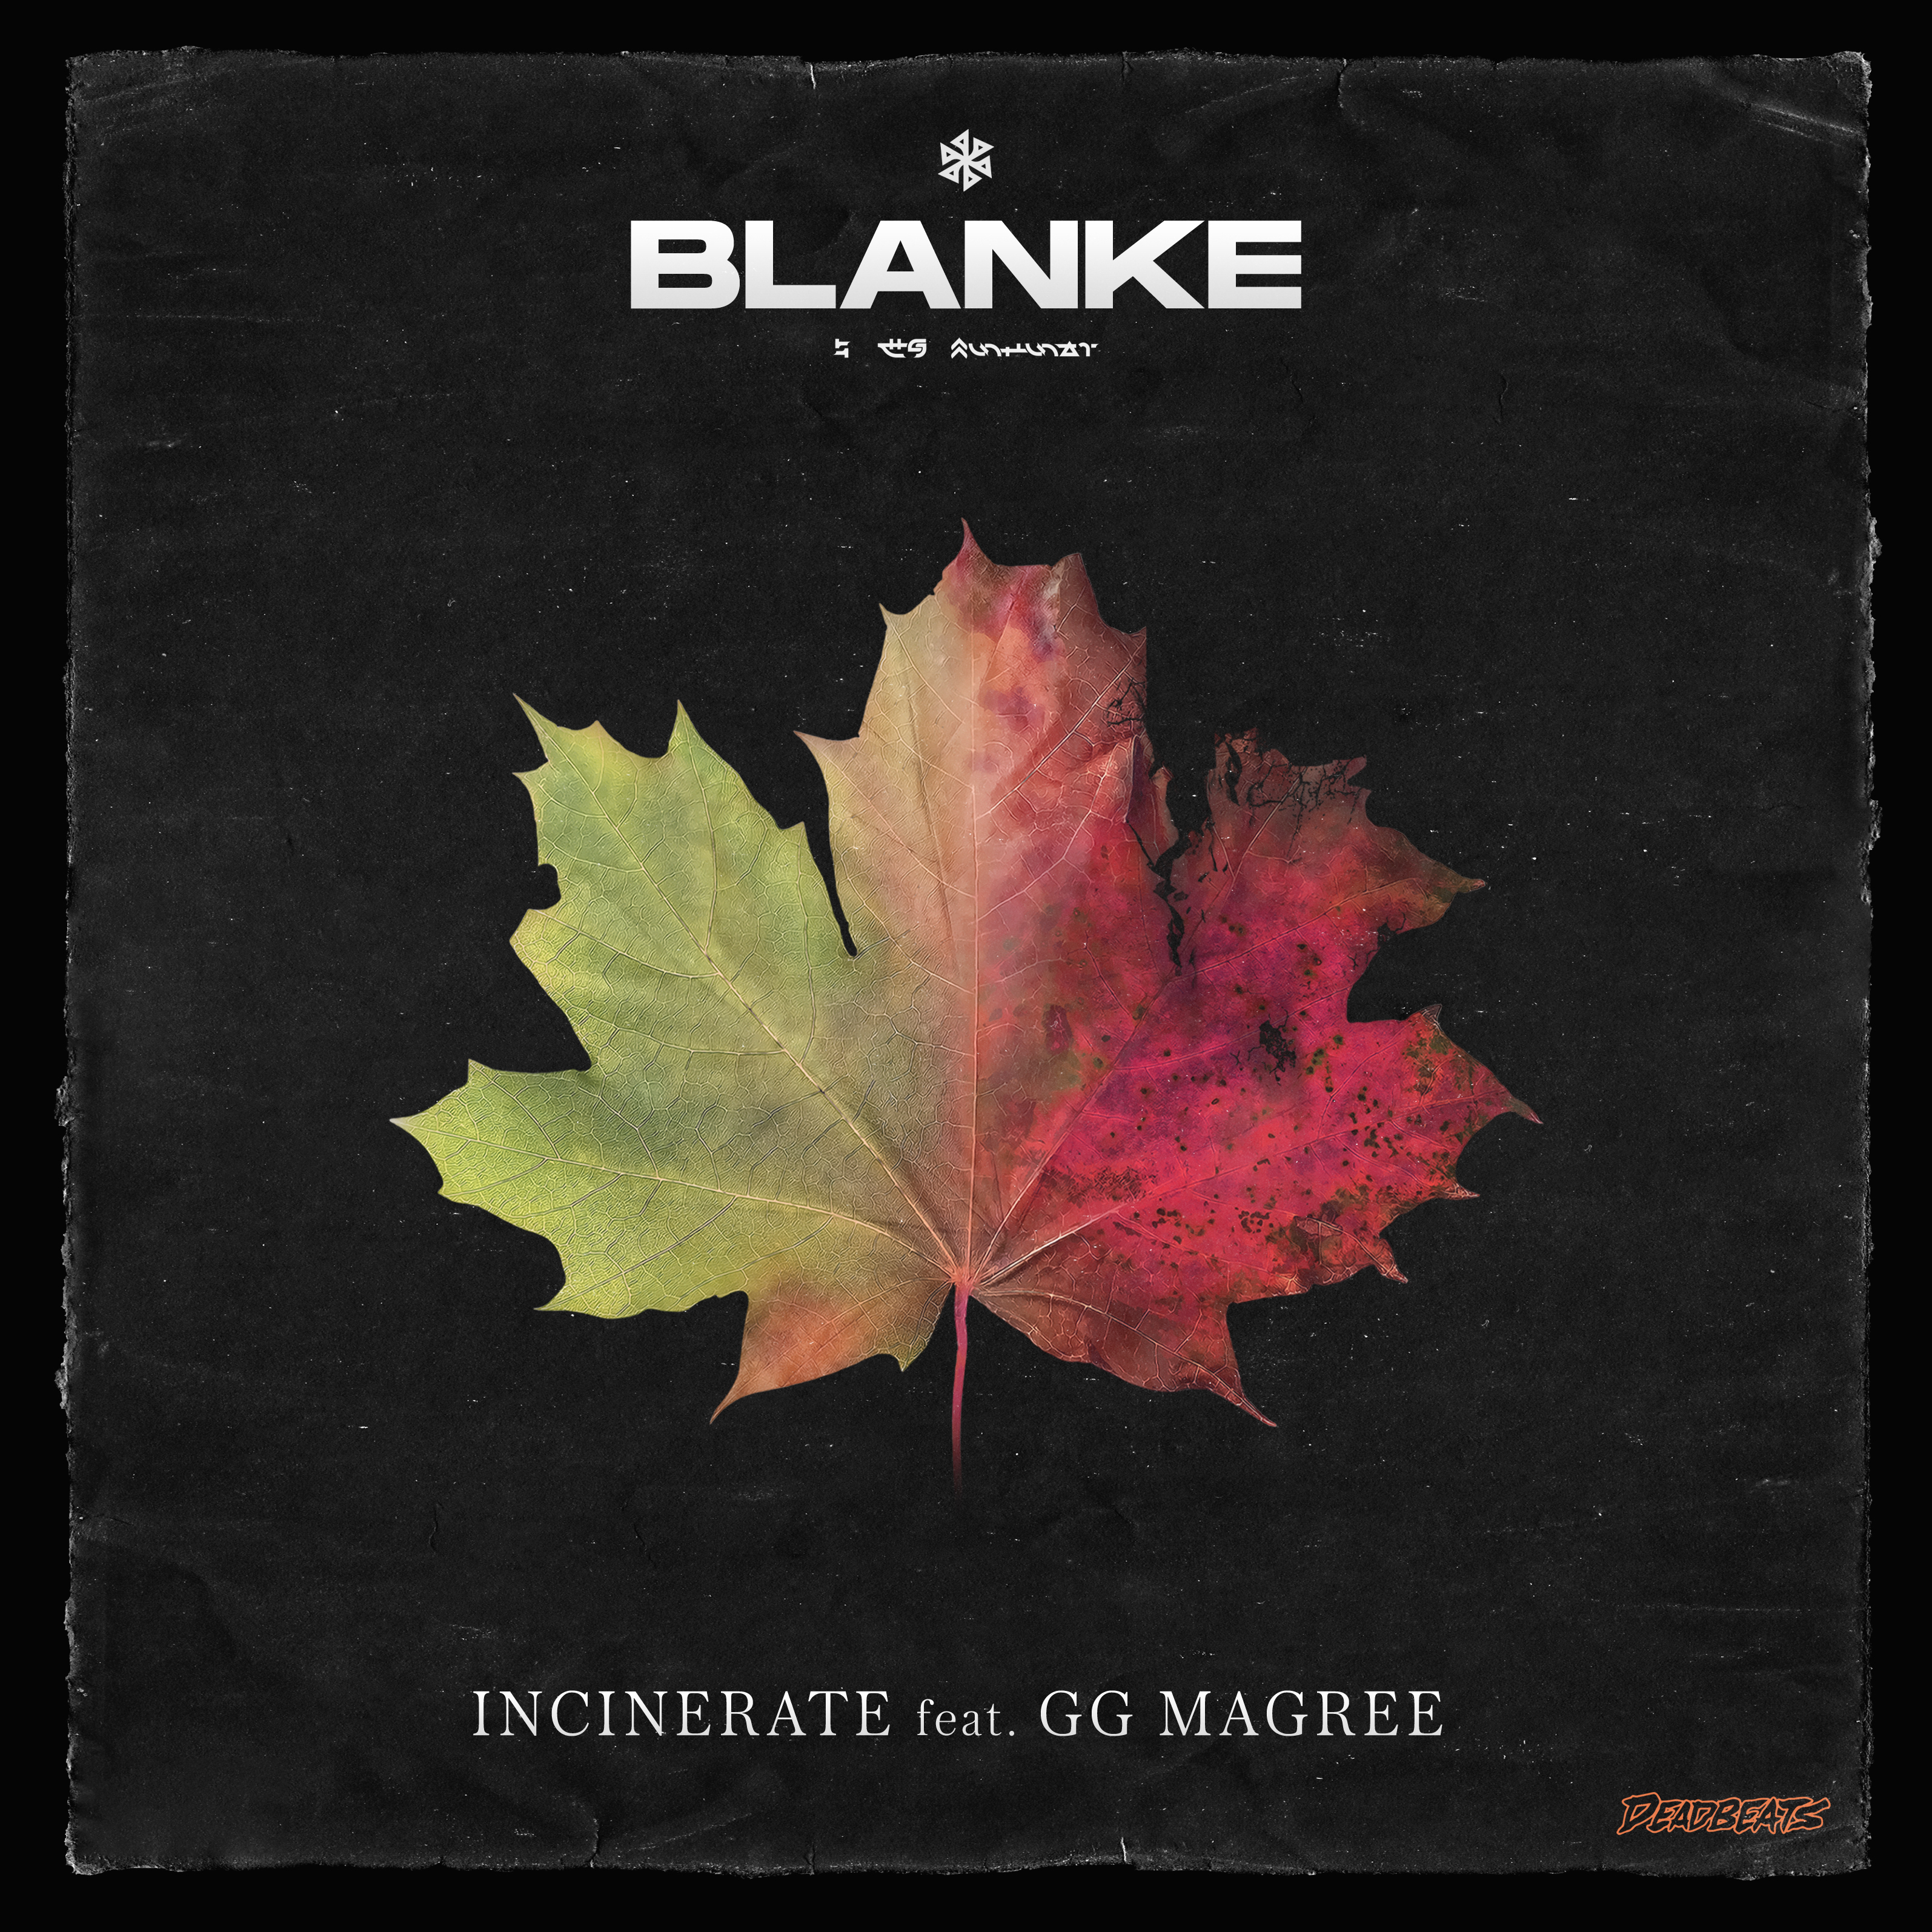 Blanke - Incinerate ft. GG Magree 2